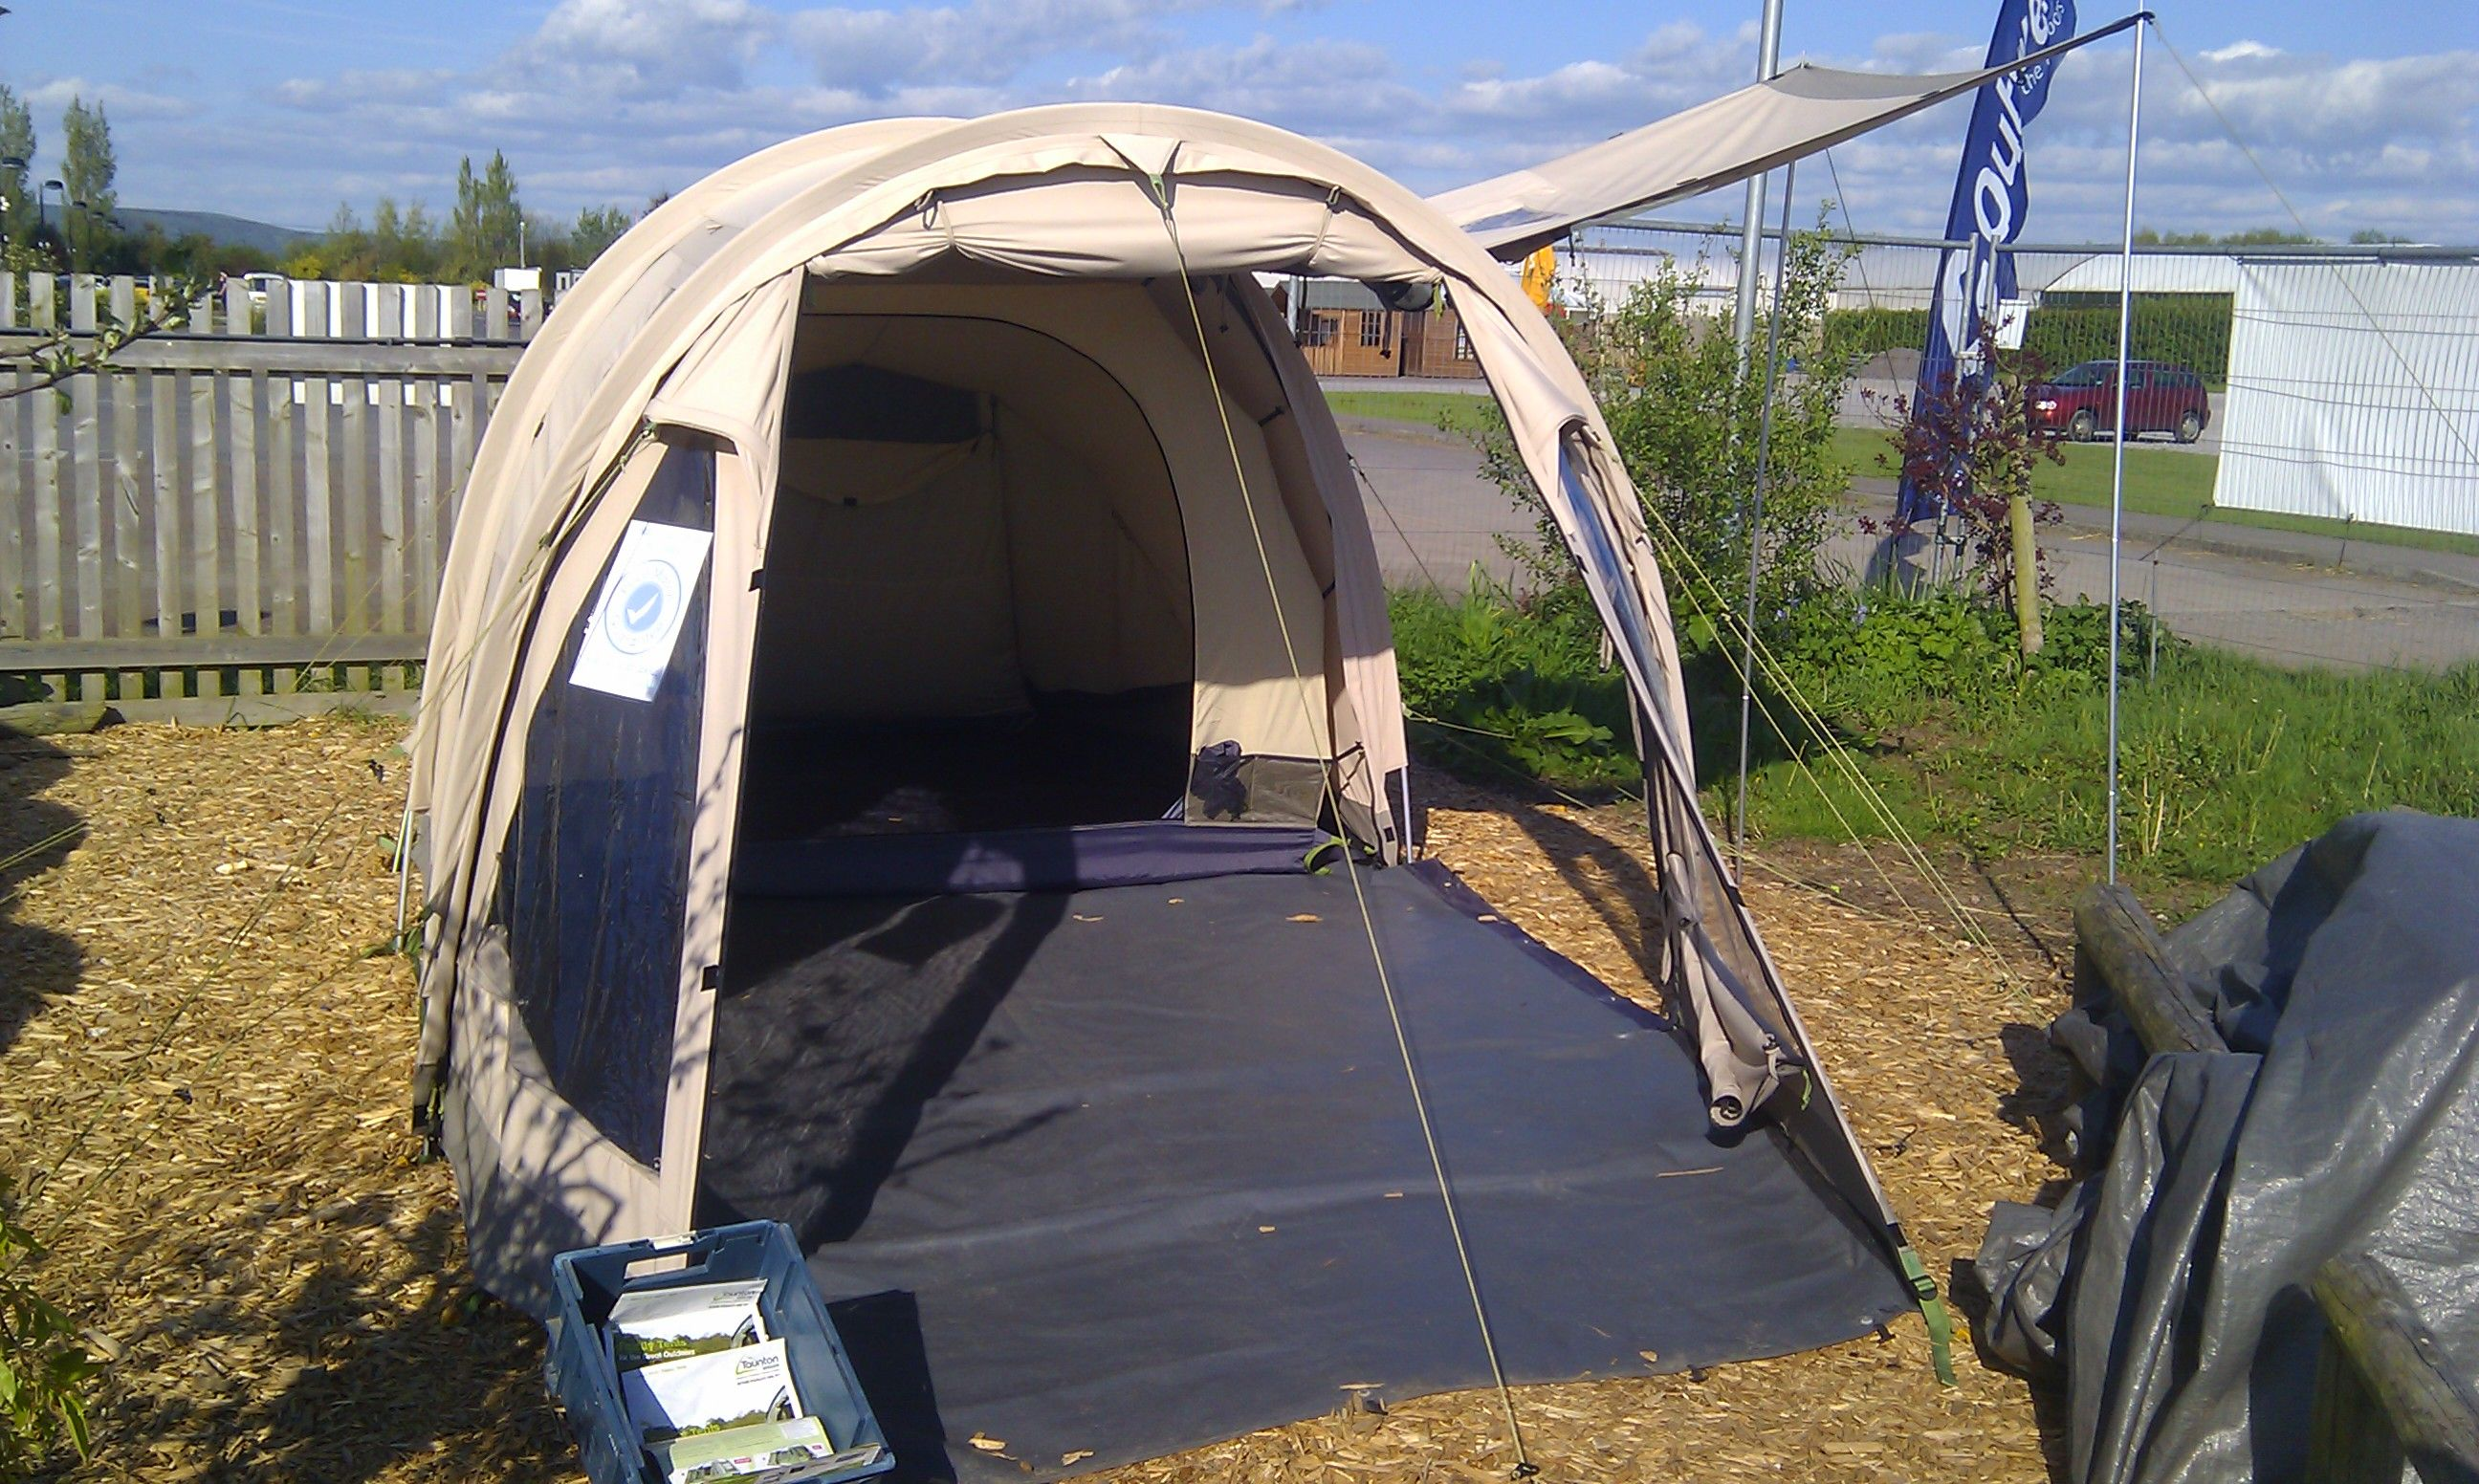 Nomad Masai 2 #tent (With images) | Air tent, Family tent ...